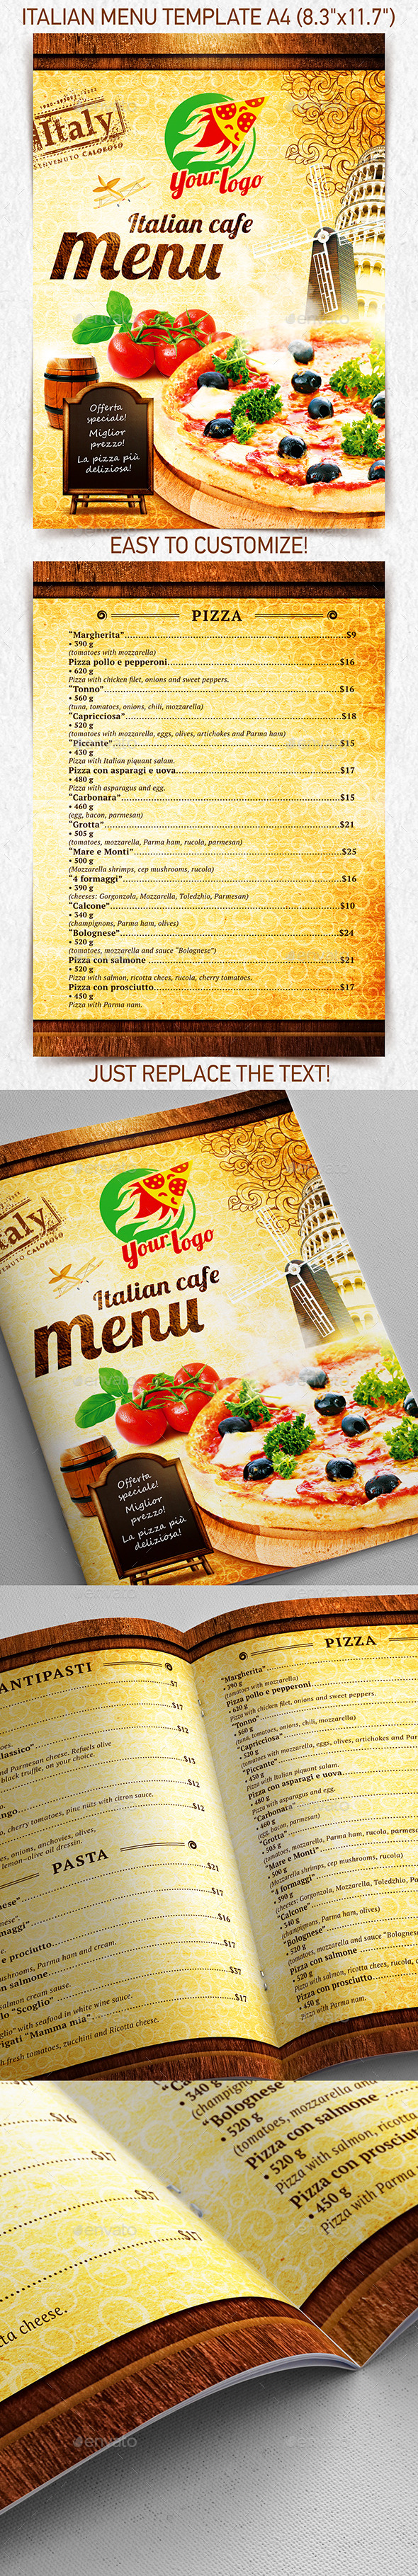 Italian Menu Template vol.1 - Food Menus Print Templates